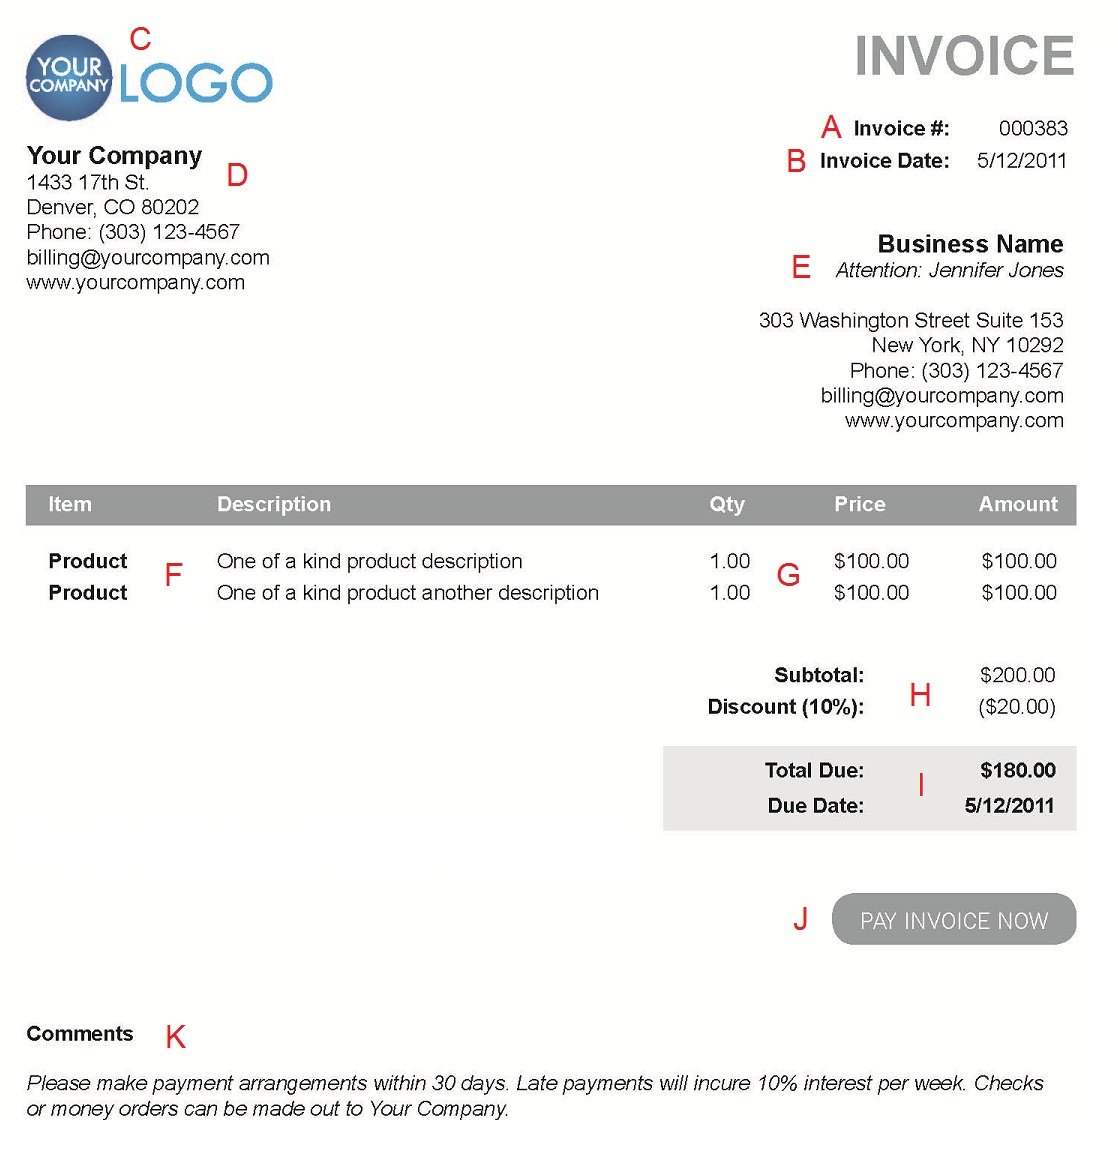 Ebitus  Marvelous The  Different Sections Of An Electronic Payment Invoice With Licious A  With Cool Online Invoicing For Small Business Also Invoice Pad Printing In Addition Invoice Pricing New Cars And Sales Invoices Definition As Well As Free Invoice Uk Additionally Invoice Requirements Australia From Paysimplecom With Ebitus  Licious The  Different Sections Of An Electronic Payment Invoice With Cool A  And Marvelous Online Invoicing For Small Business Also Invoice Pad Printing In Addition Invoice Pricing New Cars From Paysimplecom